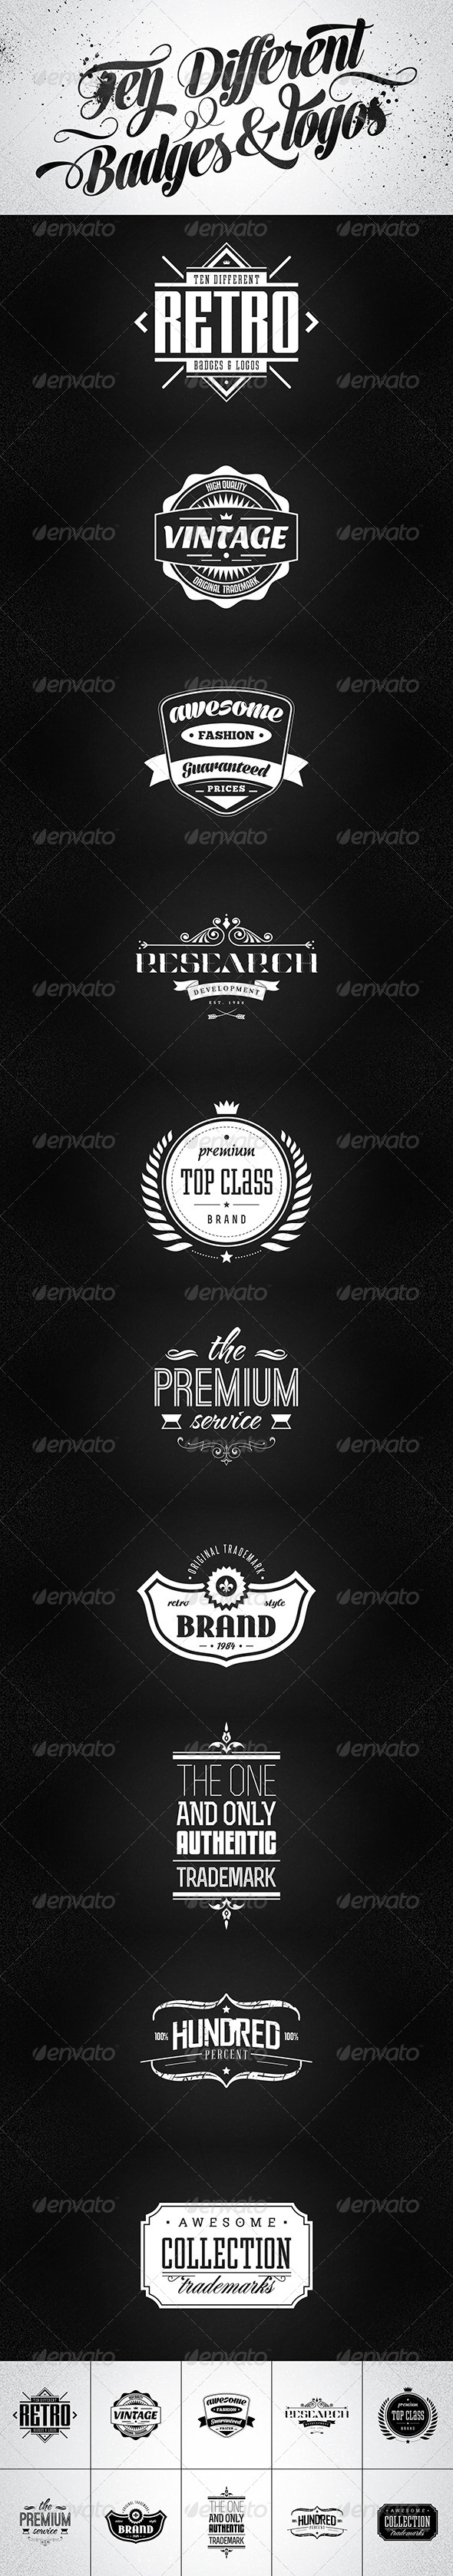 10 Retro Badges & Logos vol.2 - Badges & Stickers Web Elements